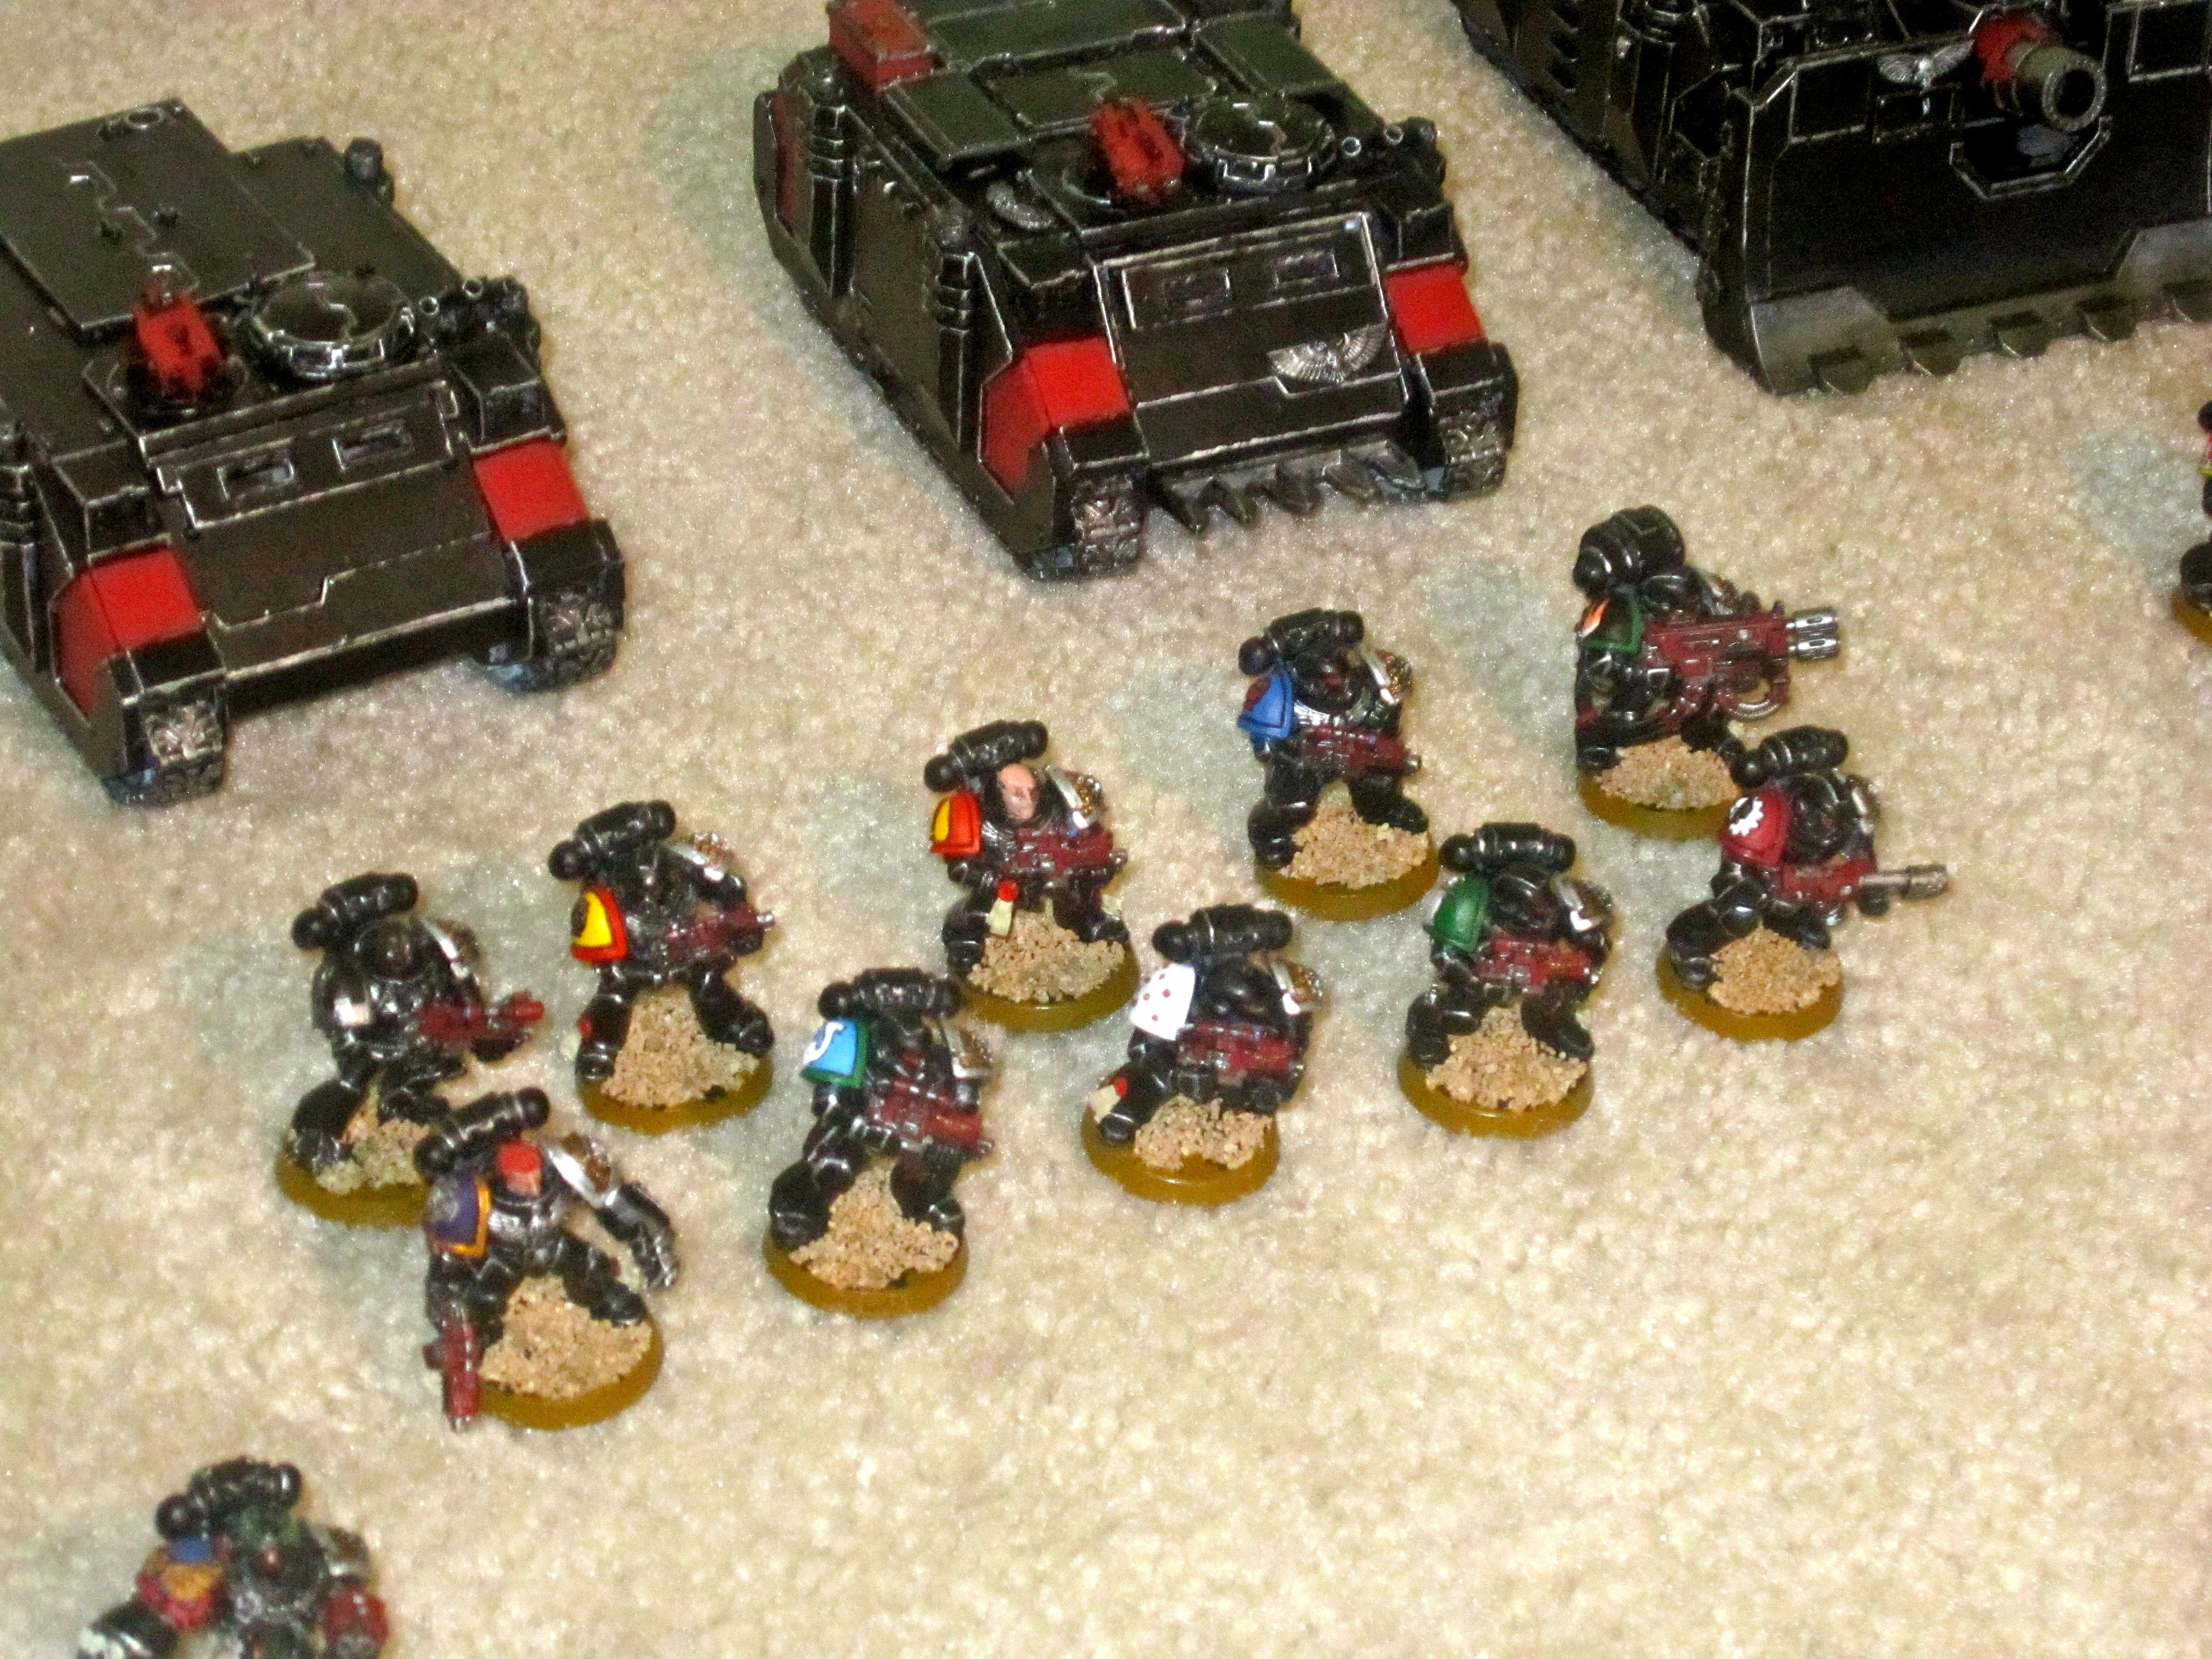 Adeptus Mechanicus, Blood Angels, Crimson Fists, Dark Angels, Death Watch, Deathwatch, Emperor's Other Children, Imperial Fists, Inquisition, Iron Hands, Salamanders, Space Marines, Tactical Squad, Ultra Marines